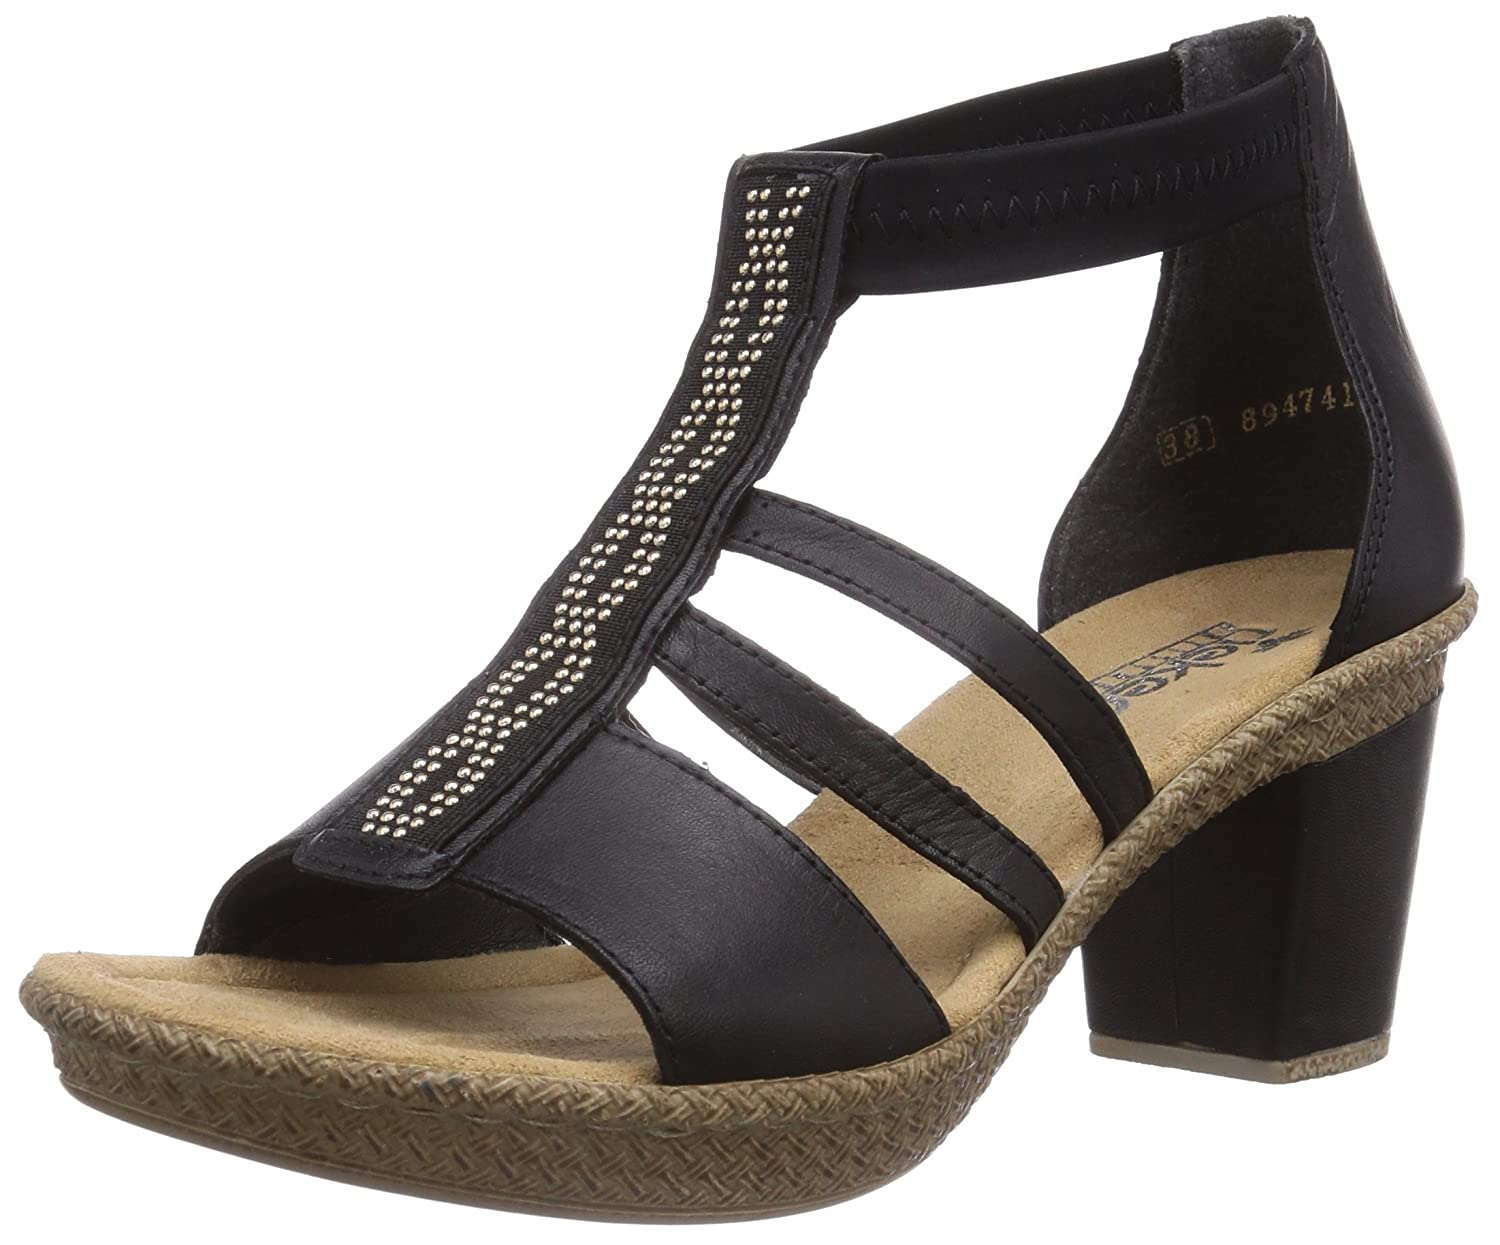 6adc4700f16 Rieker 66554, Women's Ankle Strap Sandals